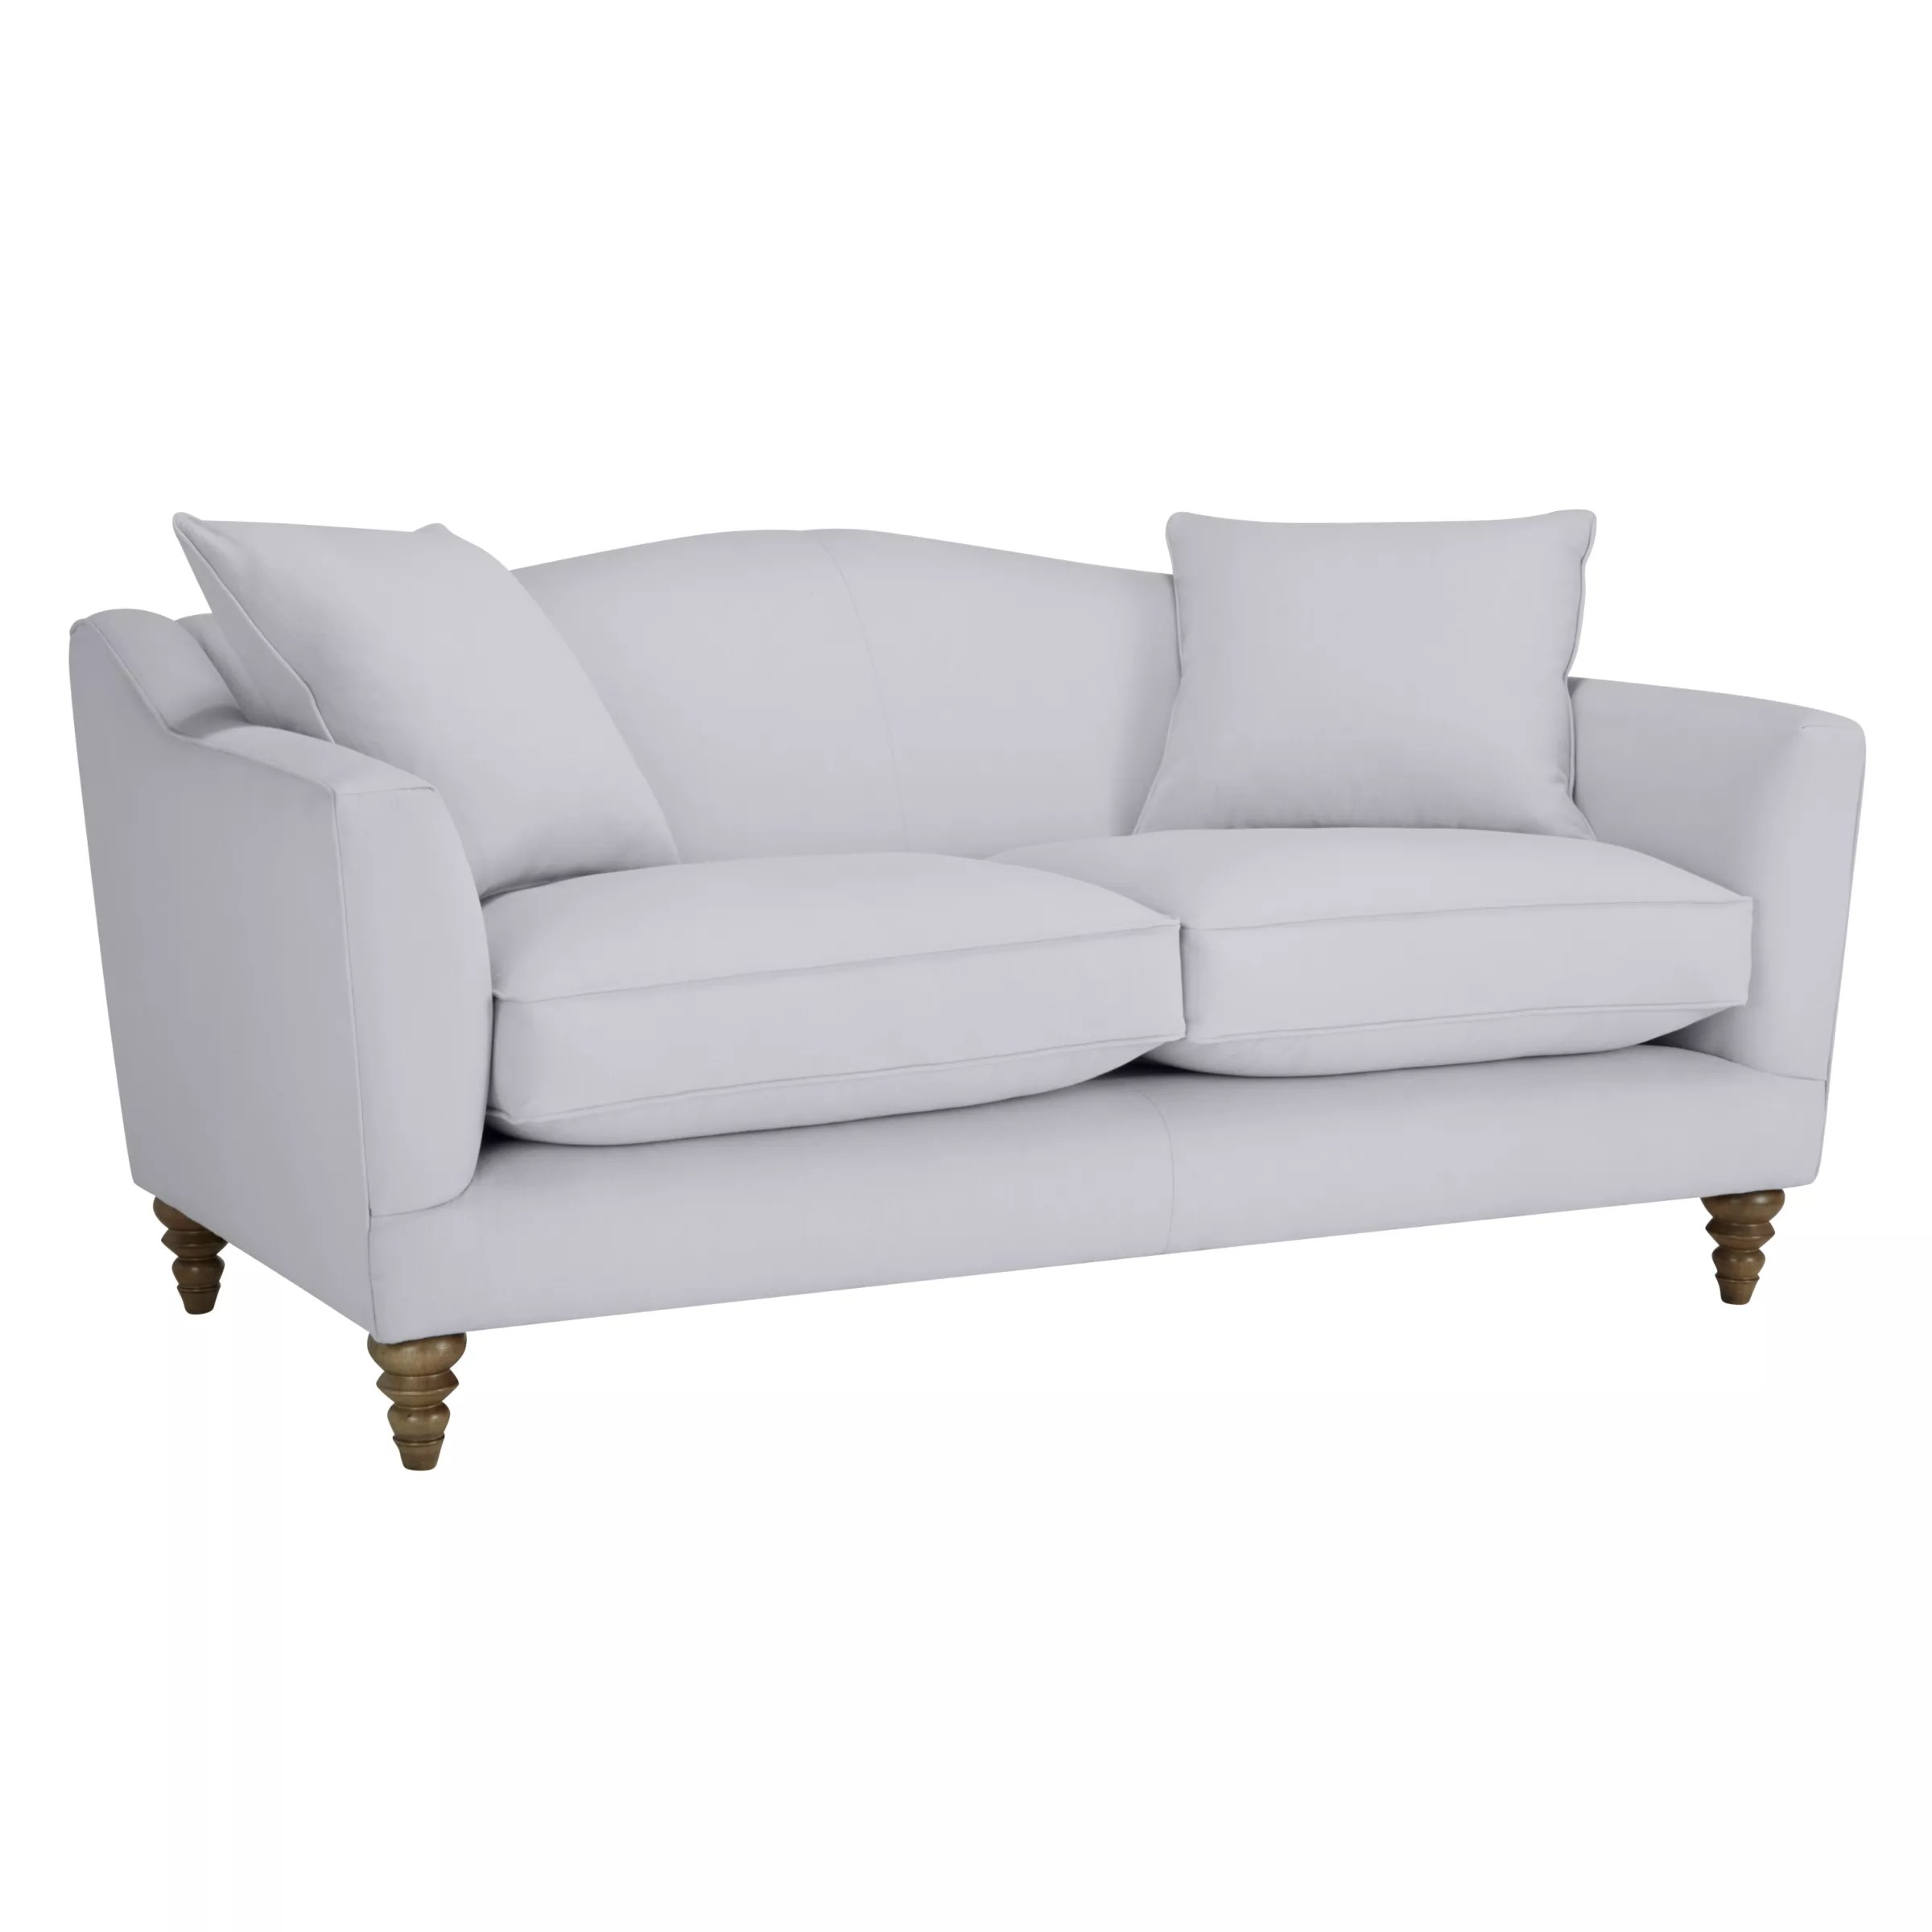 John Lewis Melrose Sofa Croft Collection Melrose Fixed Cover Grand 4 Seater Sofa